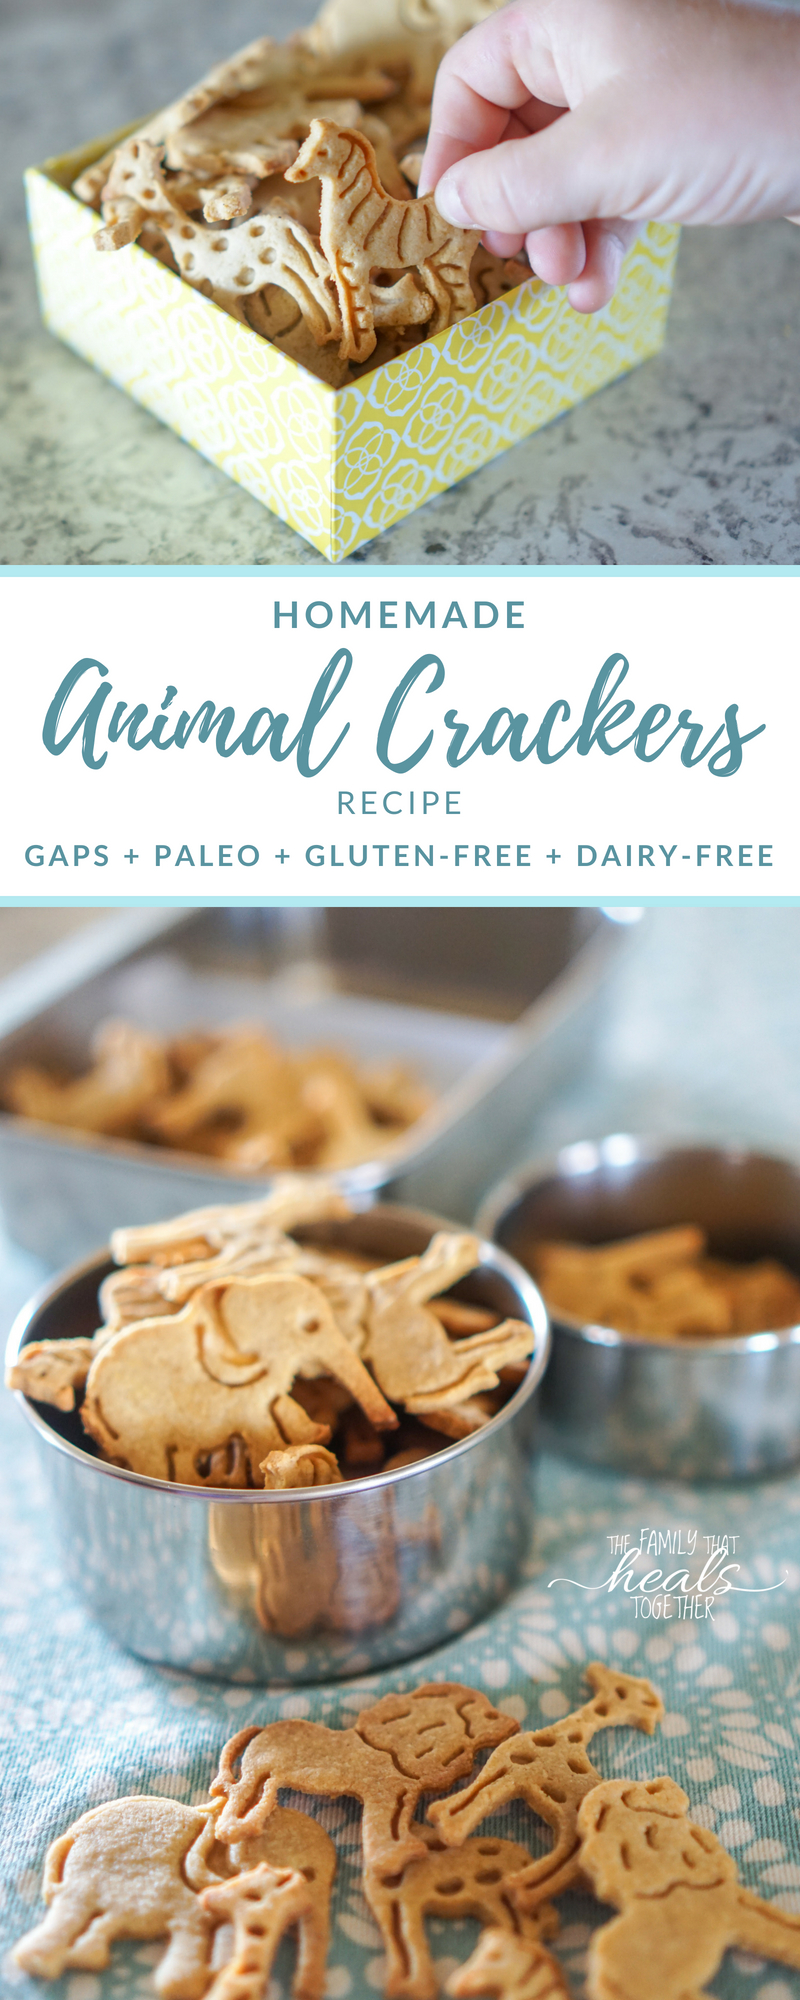 Animal Cracker Recipe for Paleo & GAPS Diet | Gluten-Free, Grain-Free, Dairy-Free, and Low Carb | The Family That Heals Together